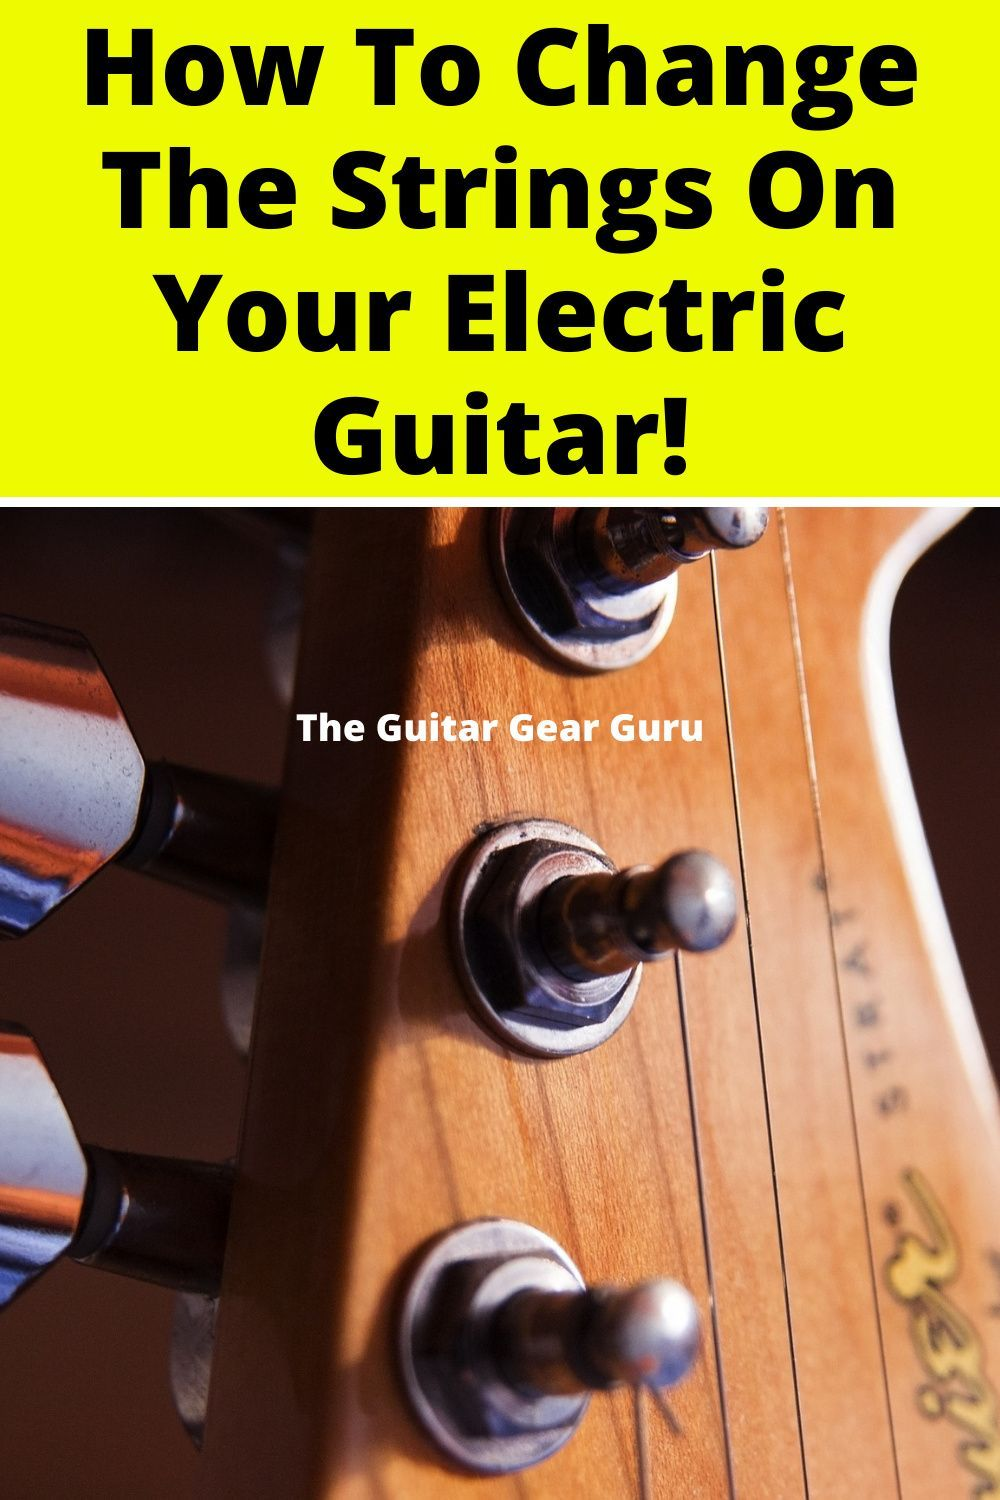 How To Change The Strings On Your Electric Guitar In 2020 Electric Guitar Guitar Electric Guitar Strings